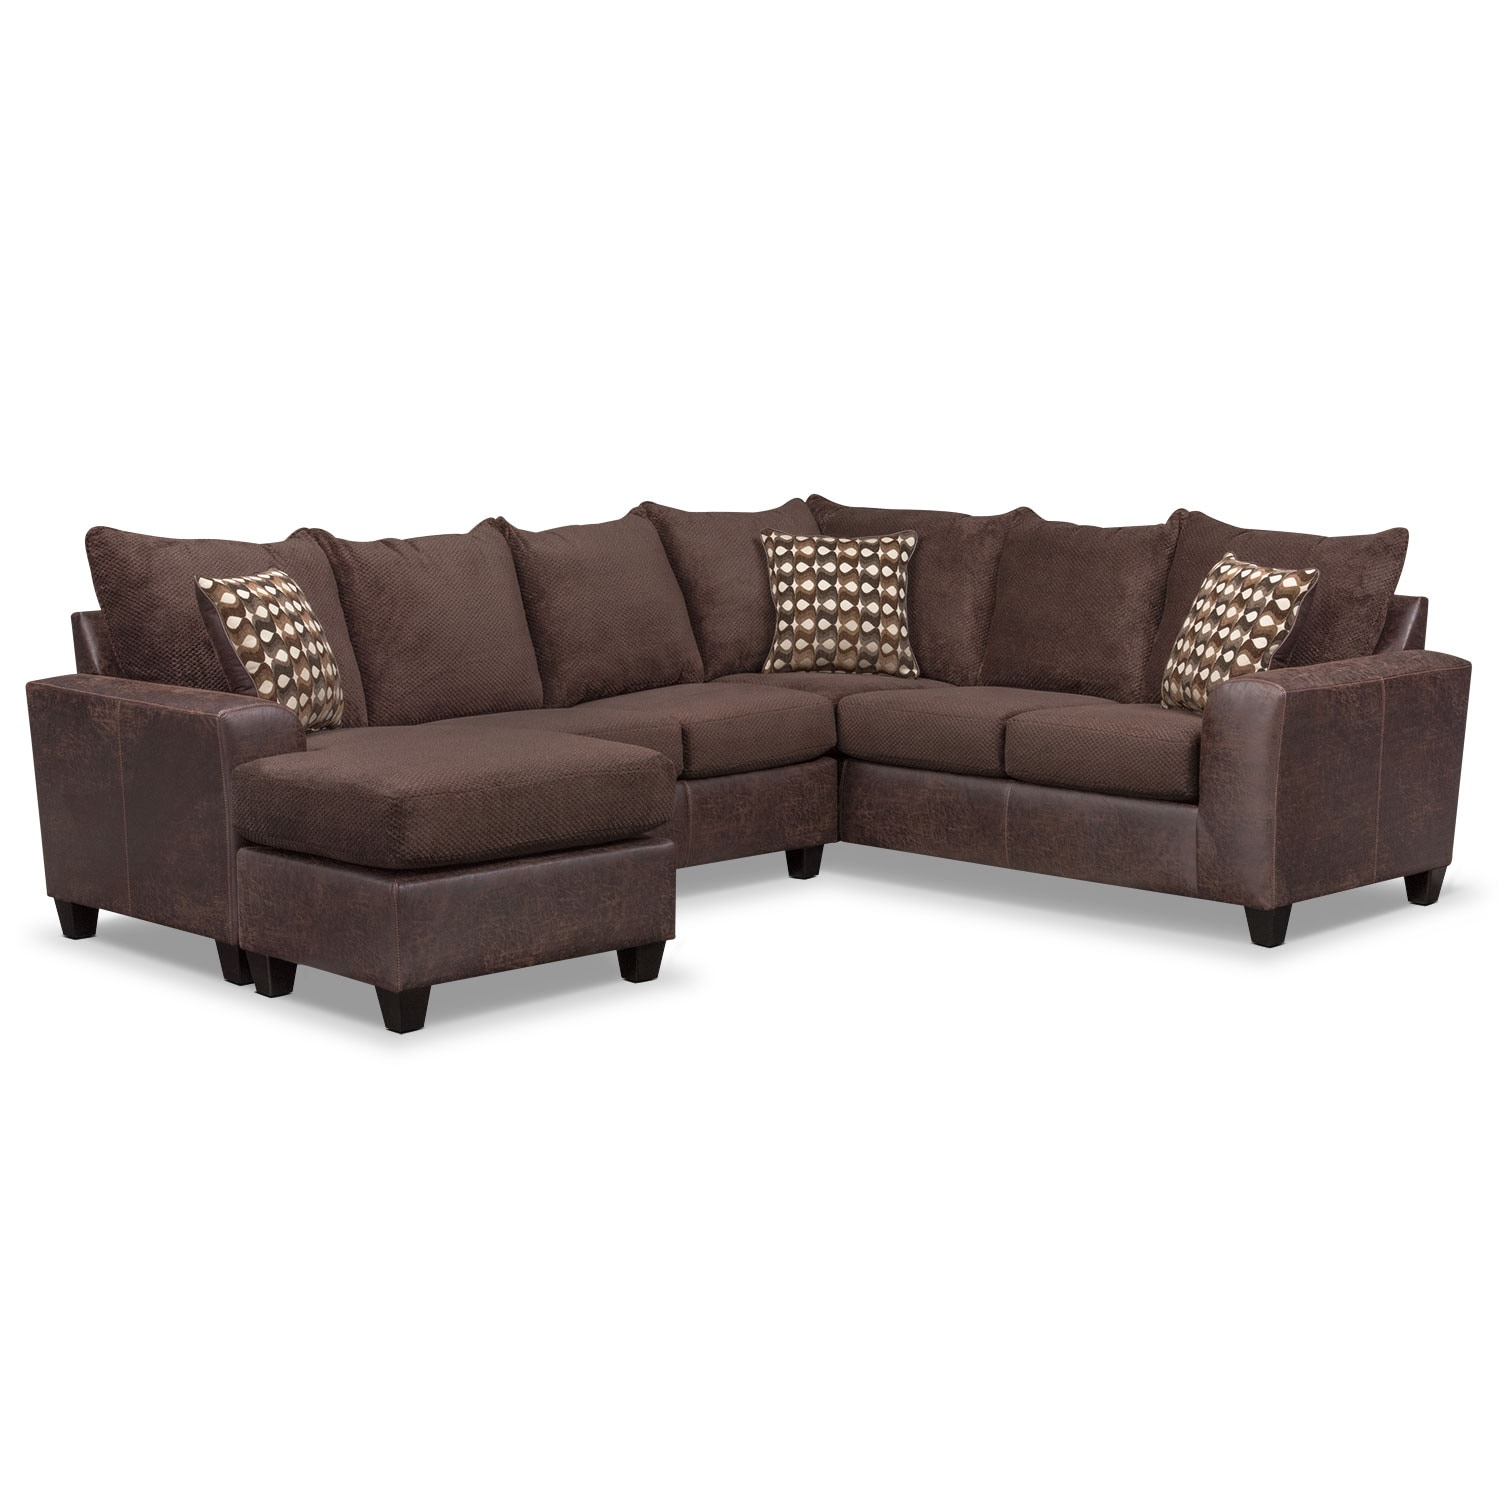 Brando 3-Piece Sectional with Modular Chaise - Chocolate